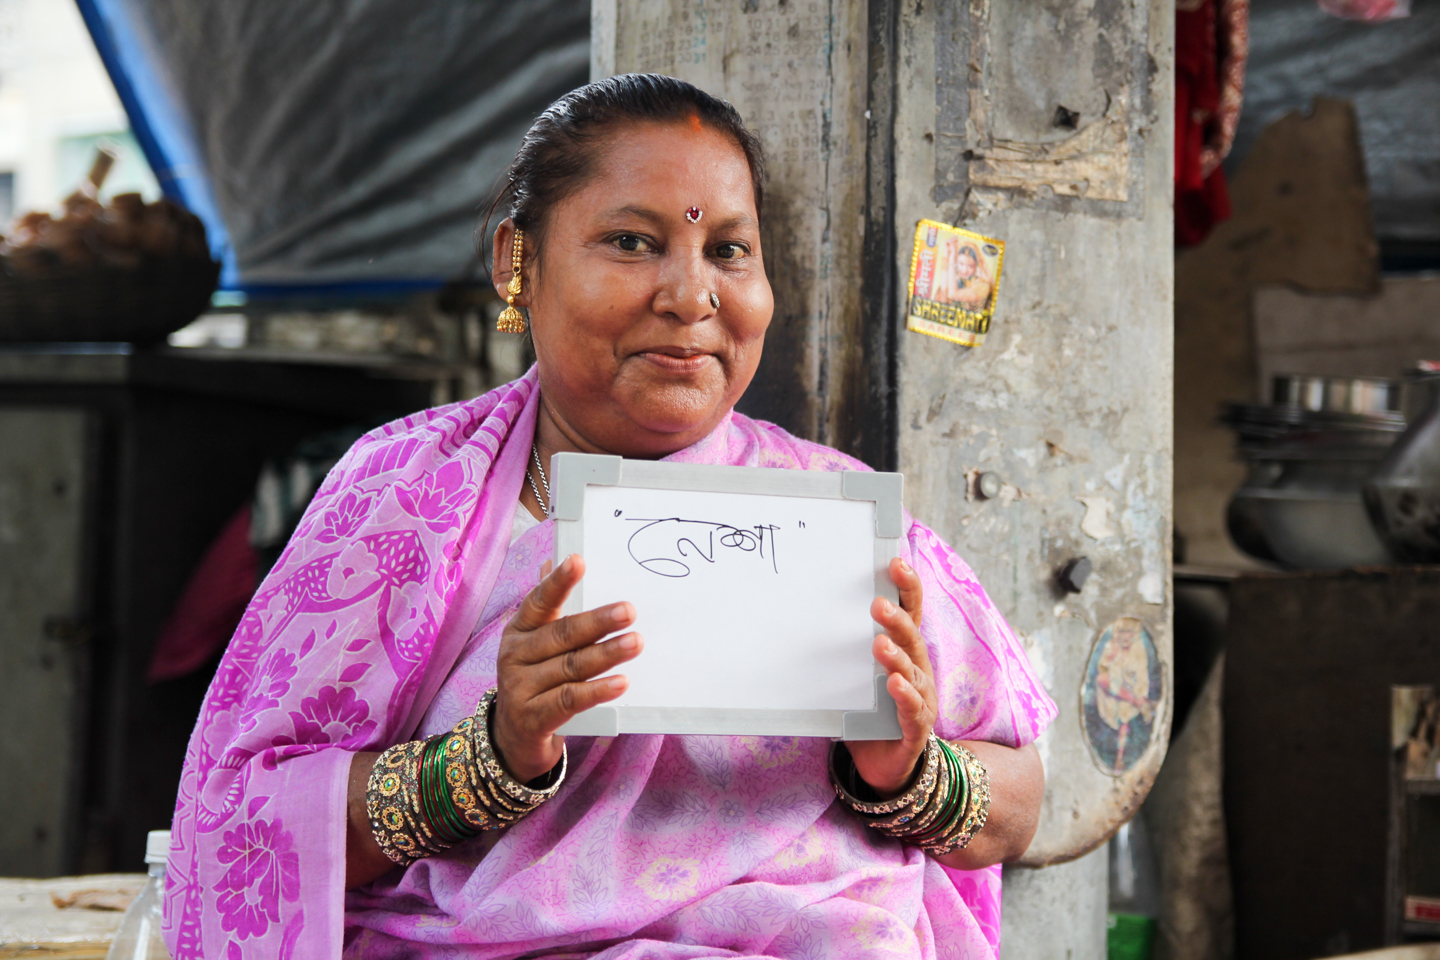 Neelu and her family have a chai stand on Talbagan Lane in Kolkata. 'My brother sold our property, so we have been here selling chai since childhood.'